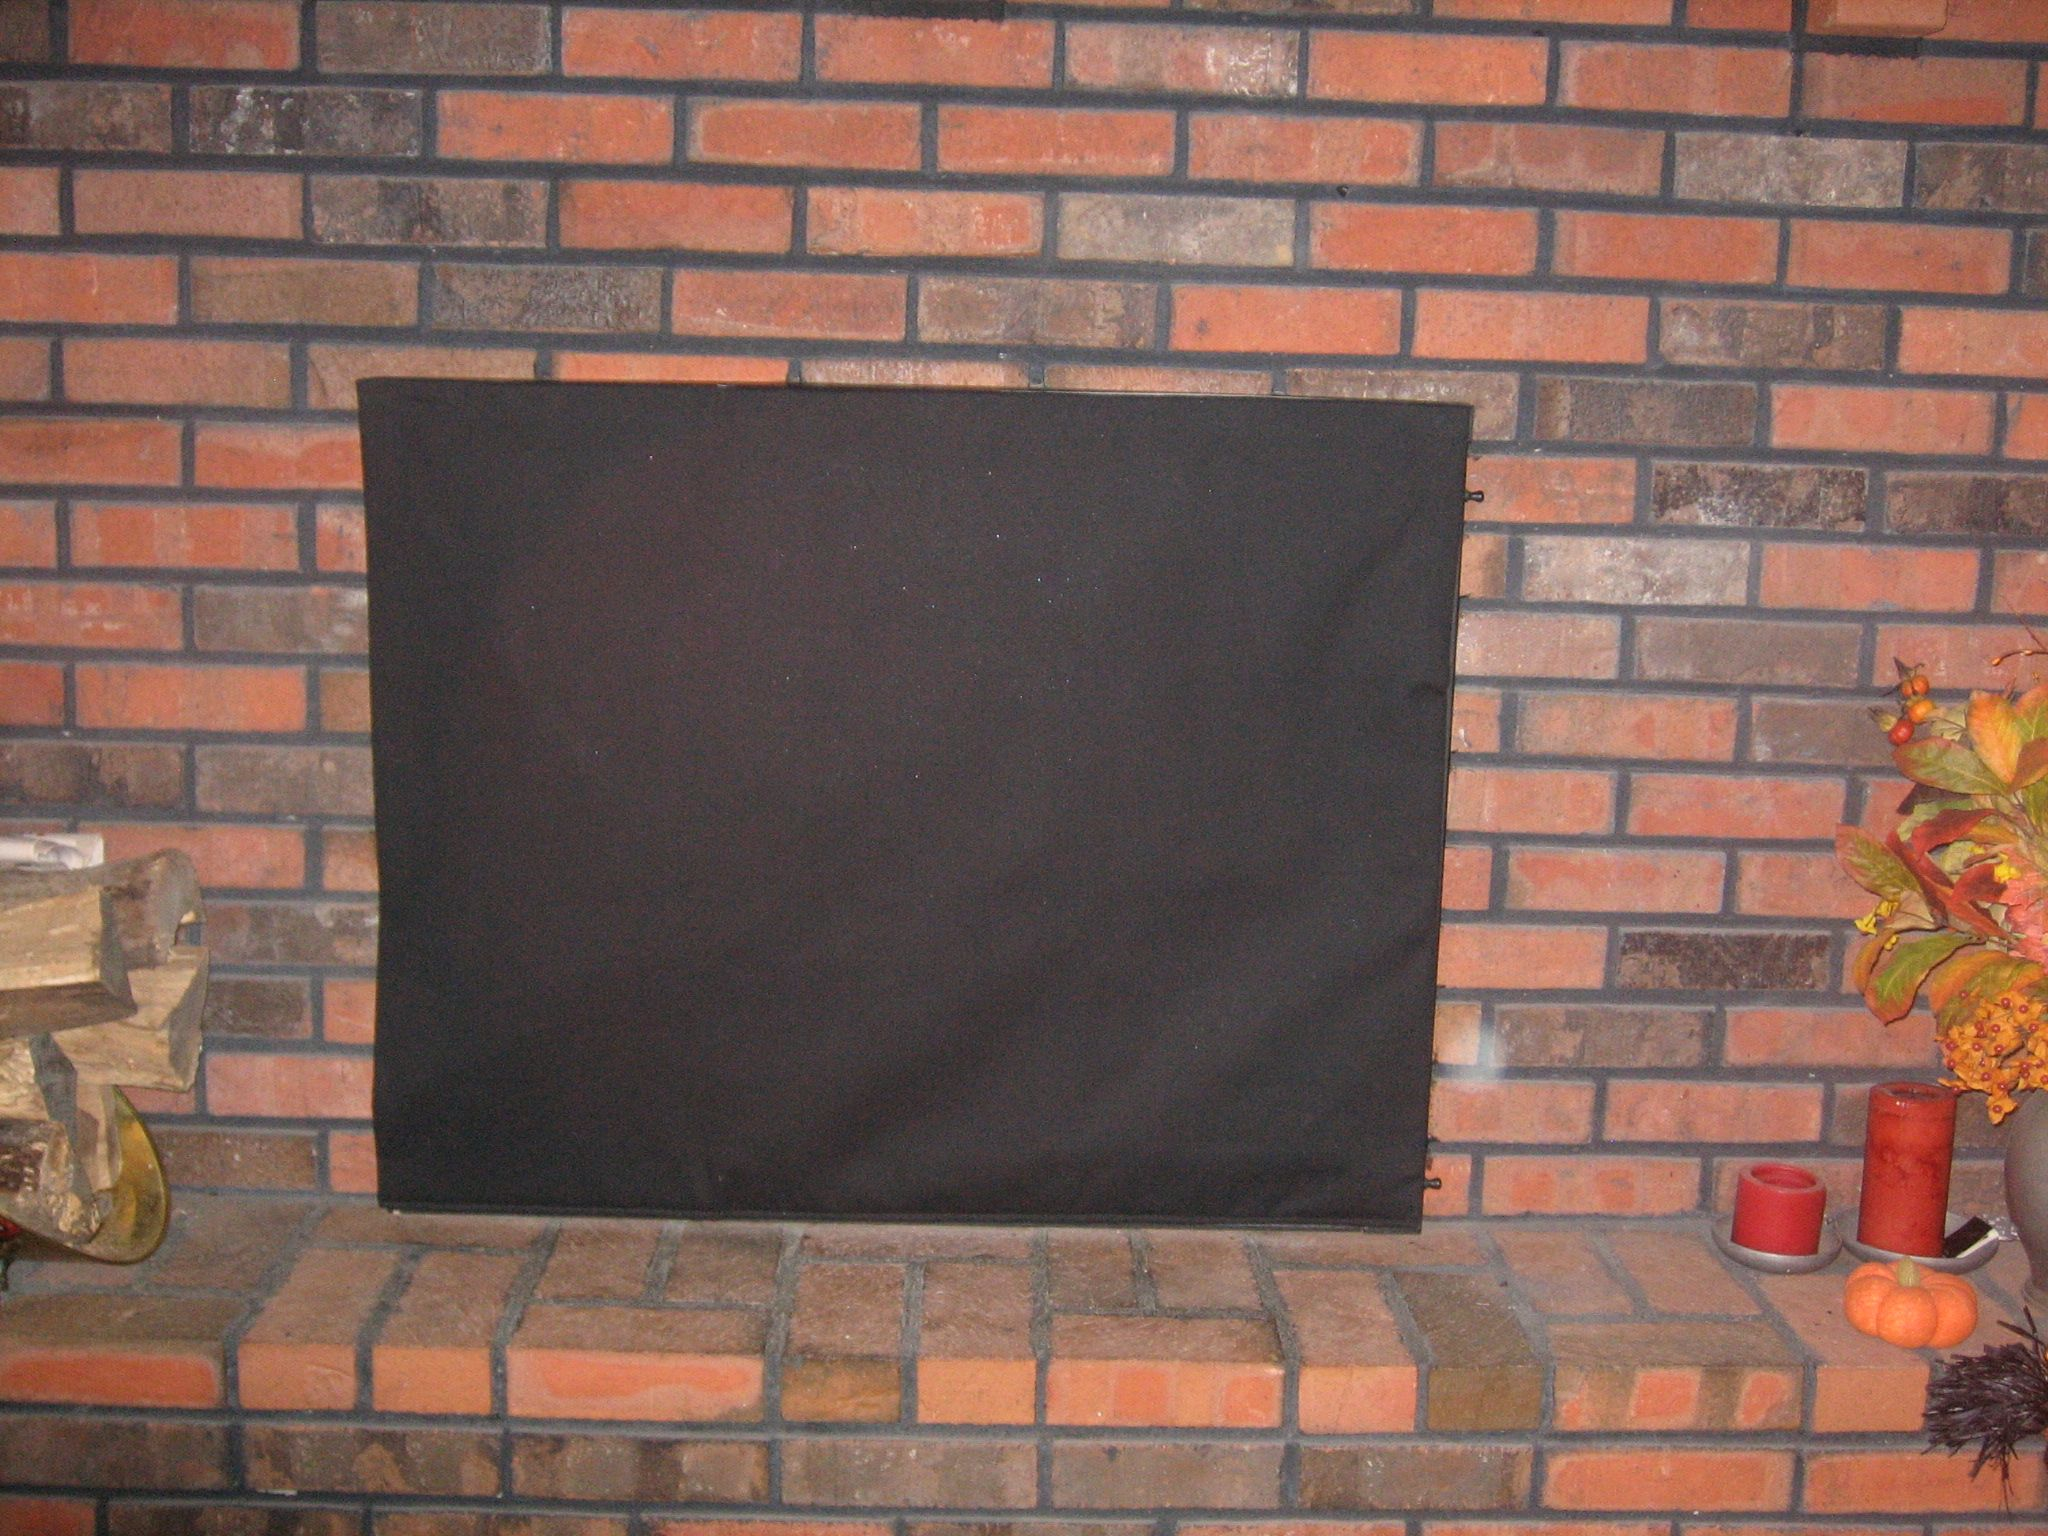 Draft stopper and Fireplace cover